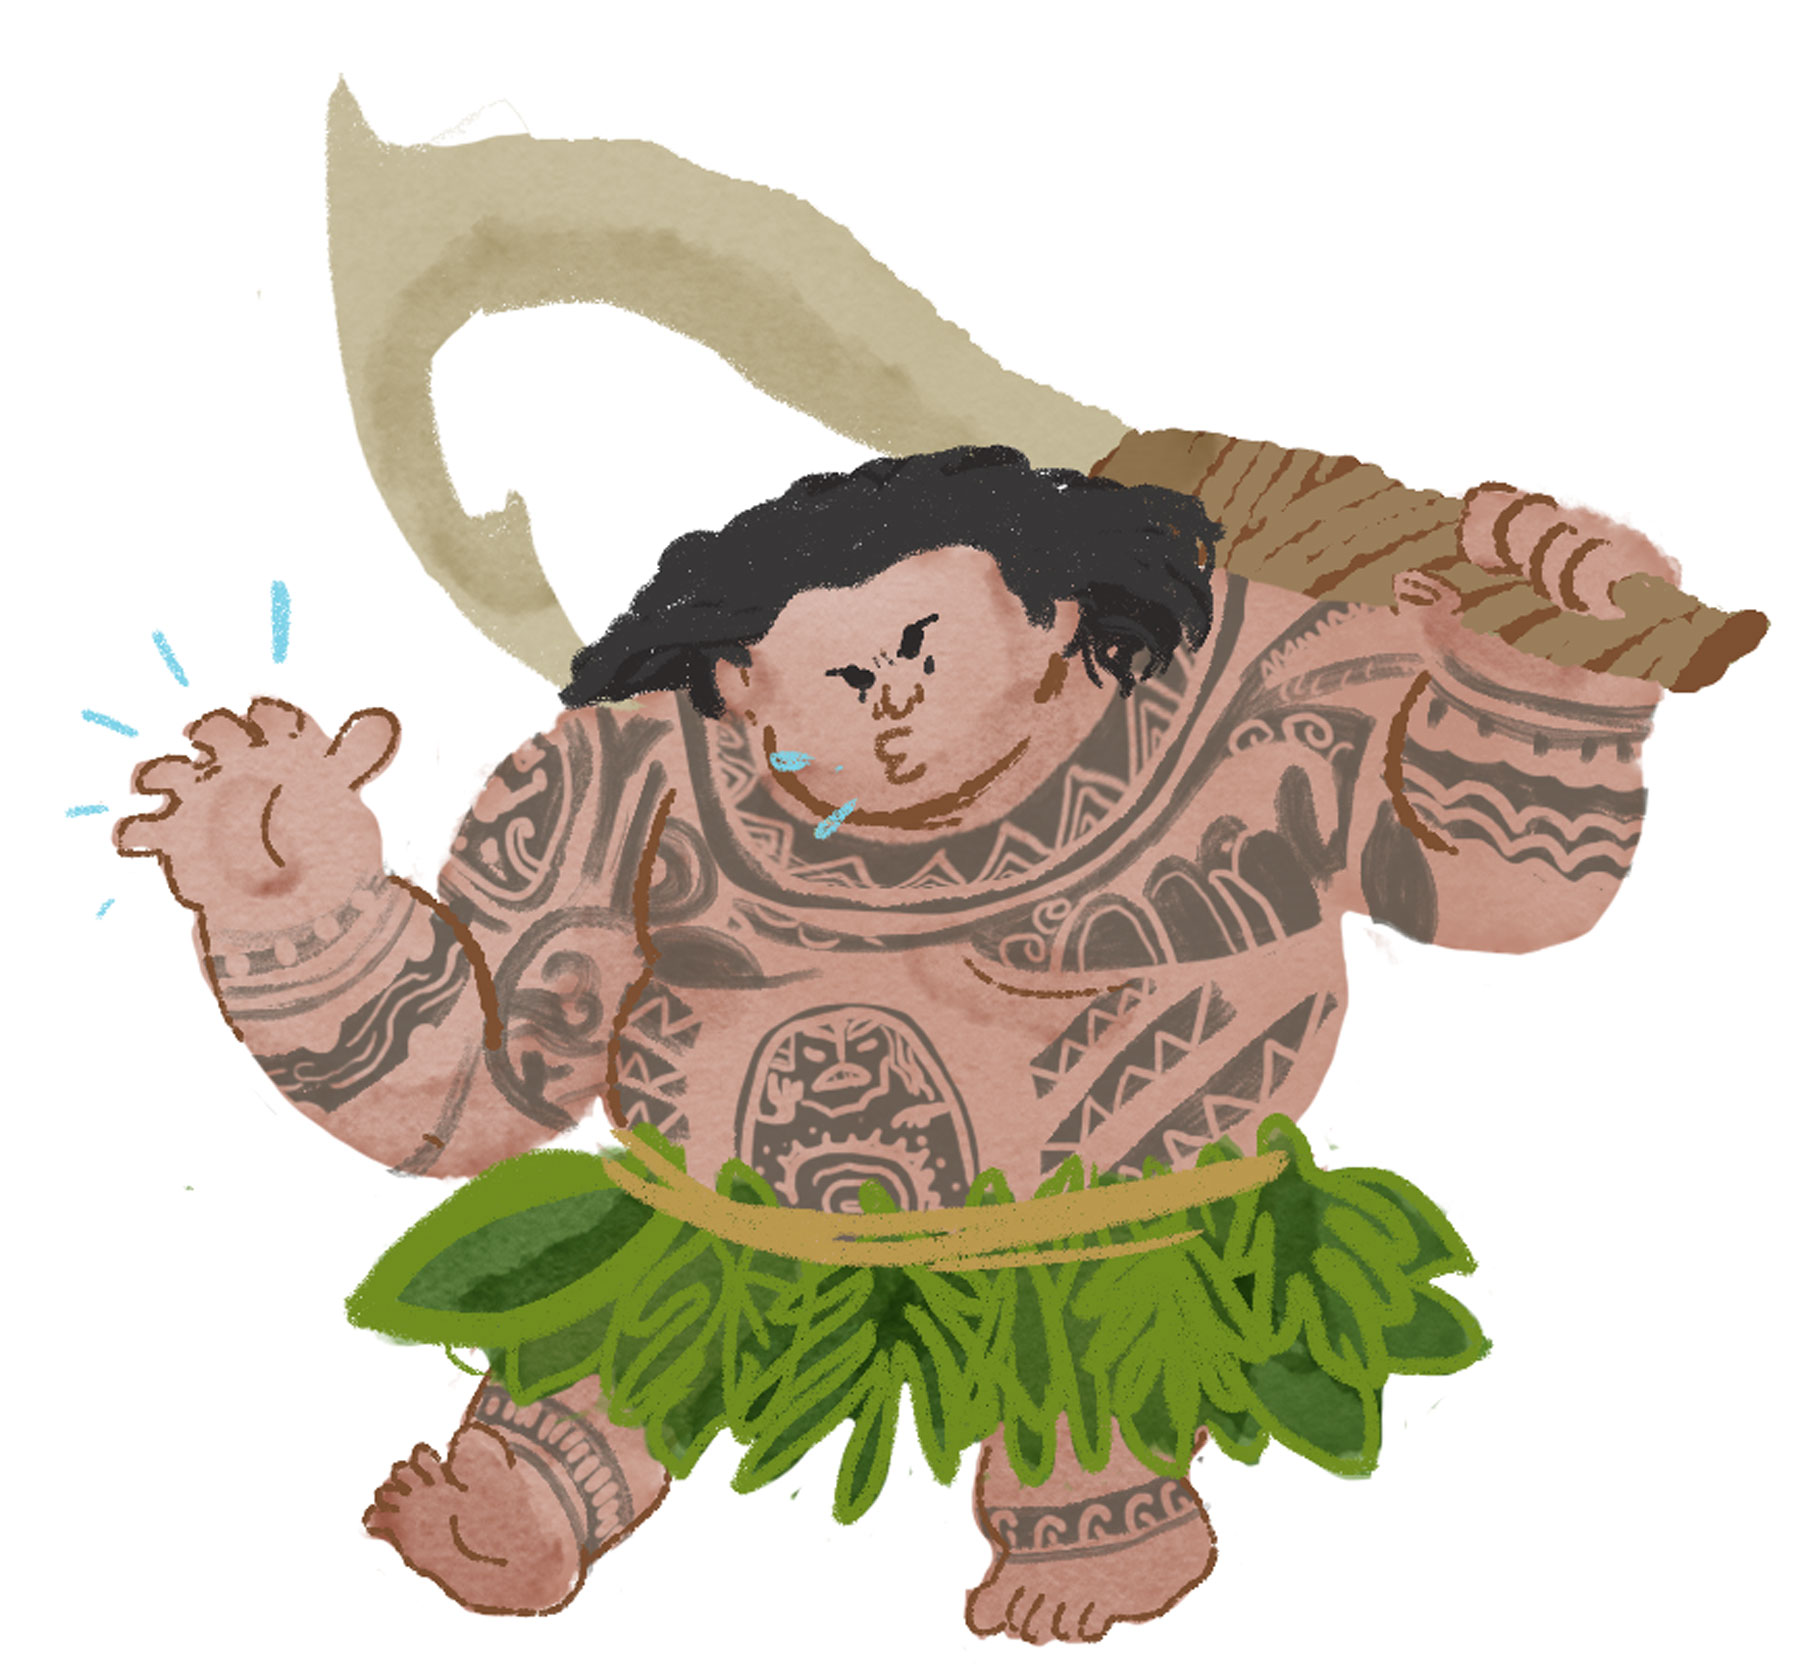 Disney's Cultural Appropriation in 'Moana'.